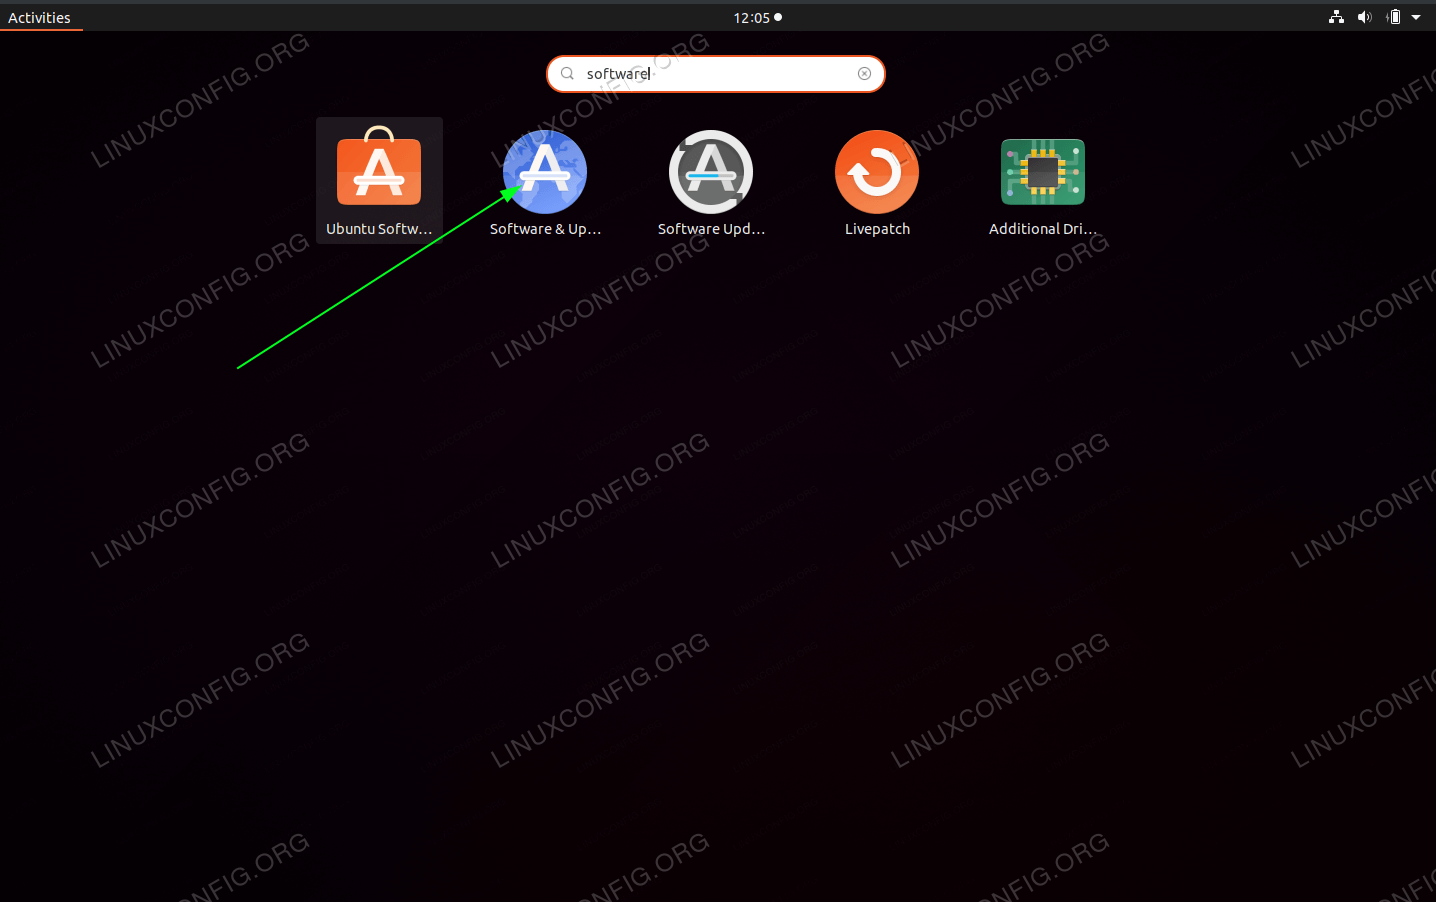 From the activities menu search for Software and click on Software & Updates icon.